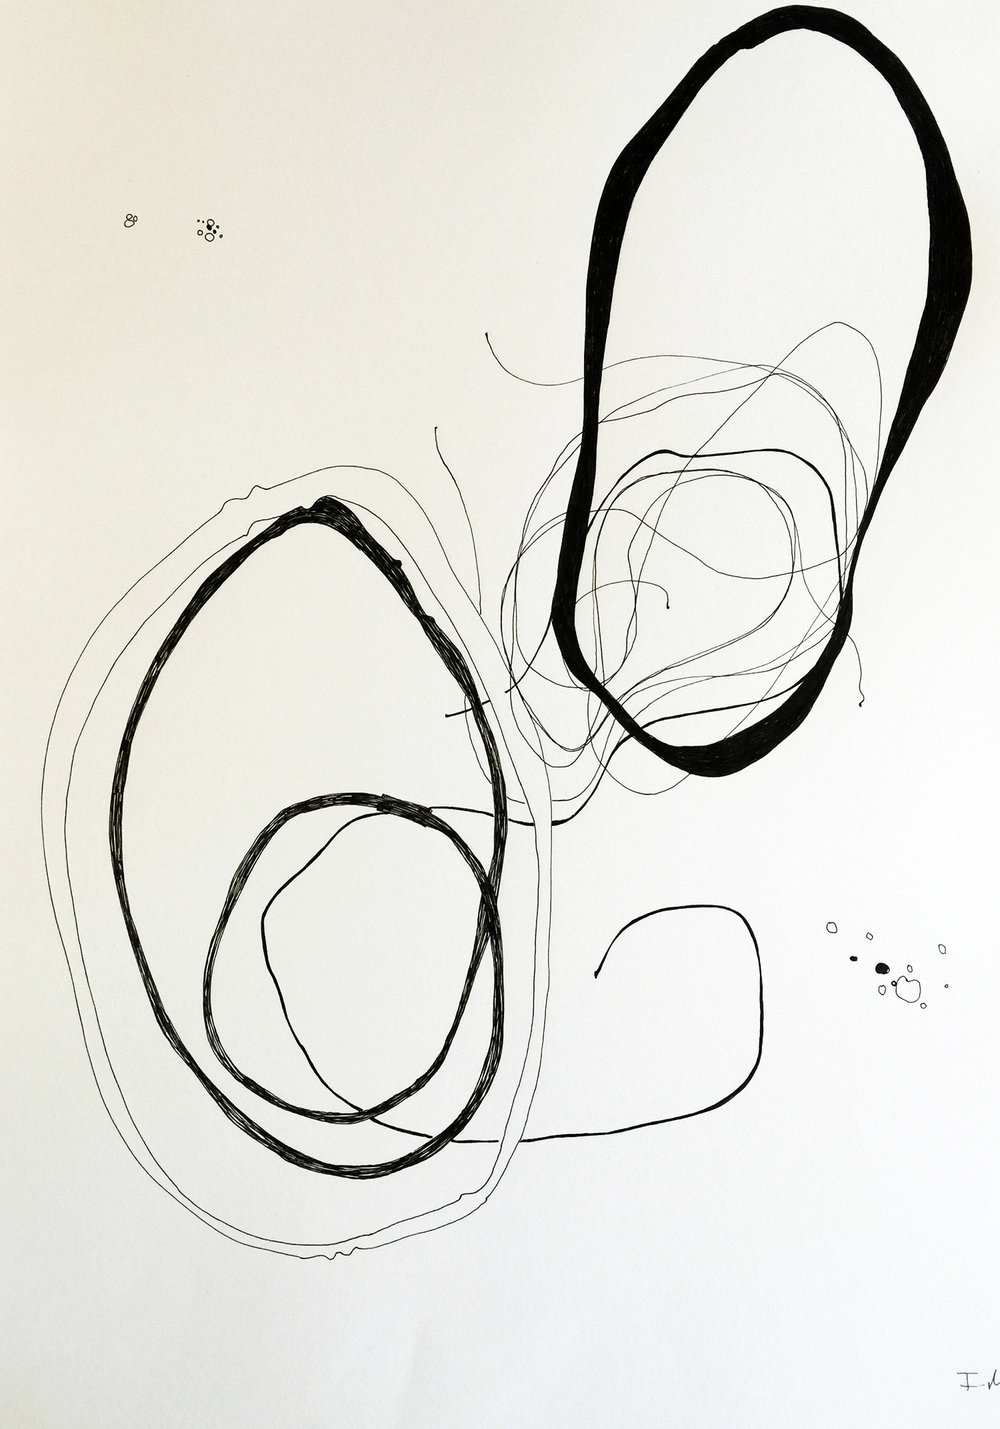 Ink on paper, A2 (approx. 16.5in x 23 in)